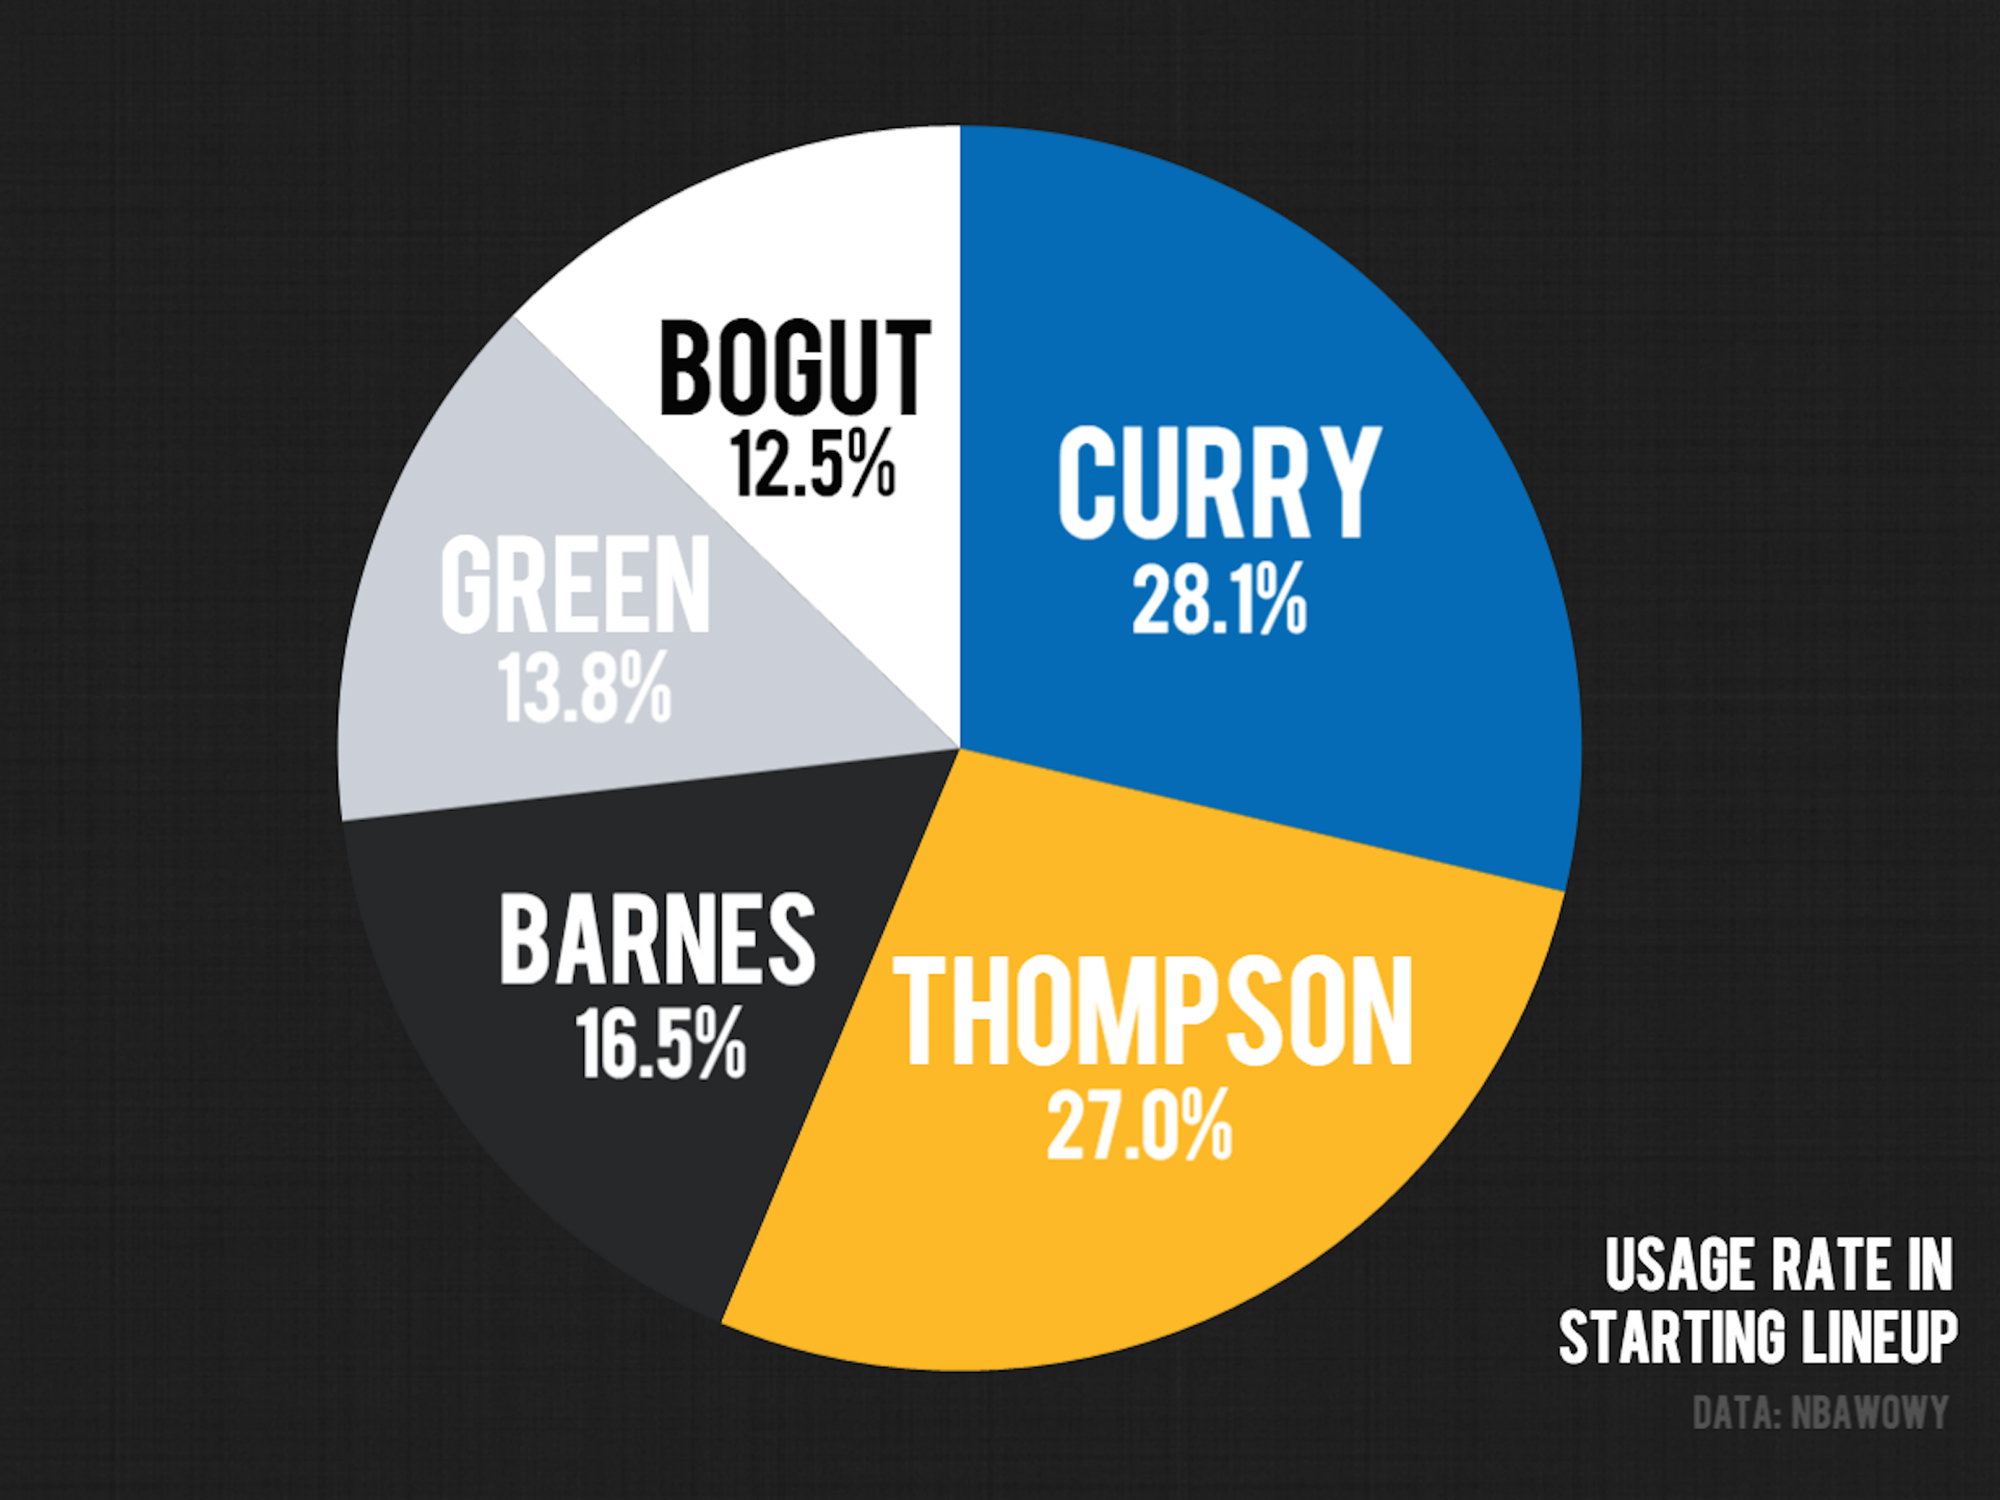 stephen-curry-klay-thompson-golden-state-warriors-starting-lineup-usage-rate